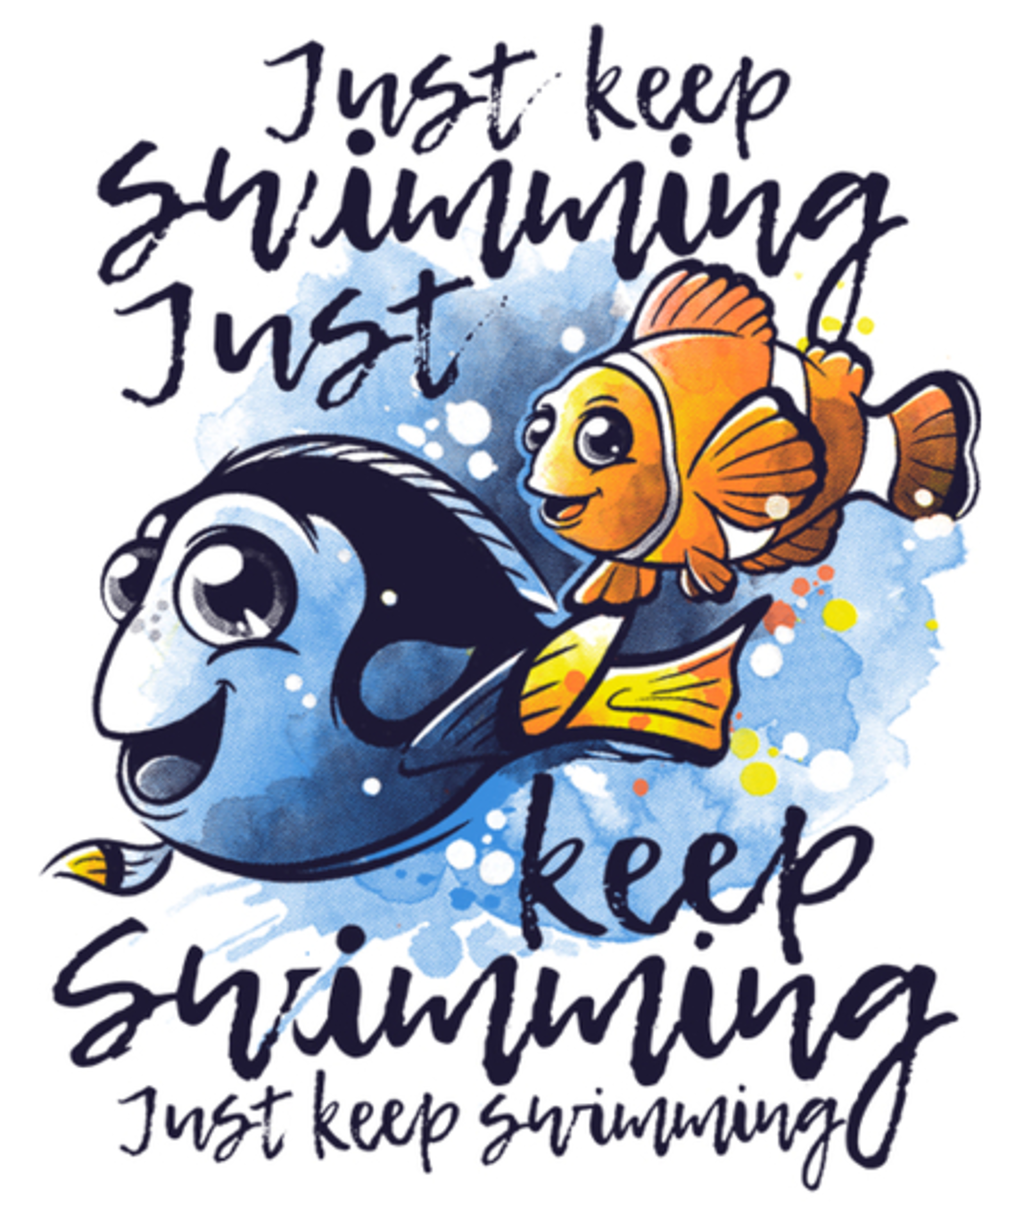 Qwertee: Just keep swimming